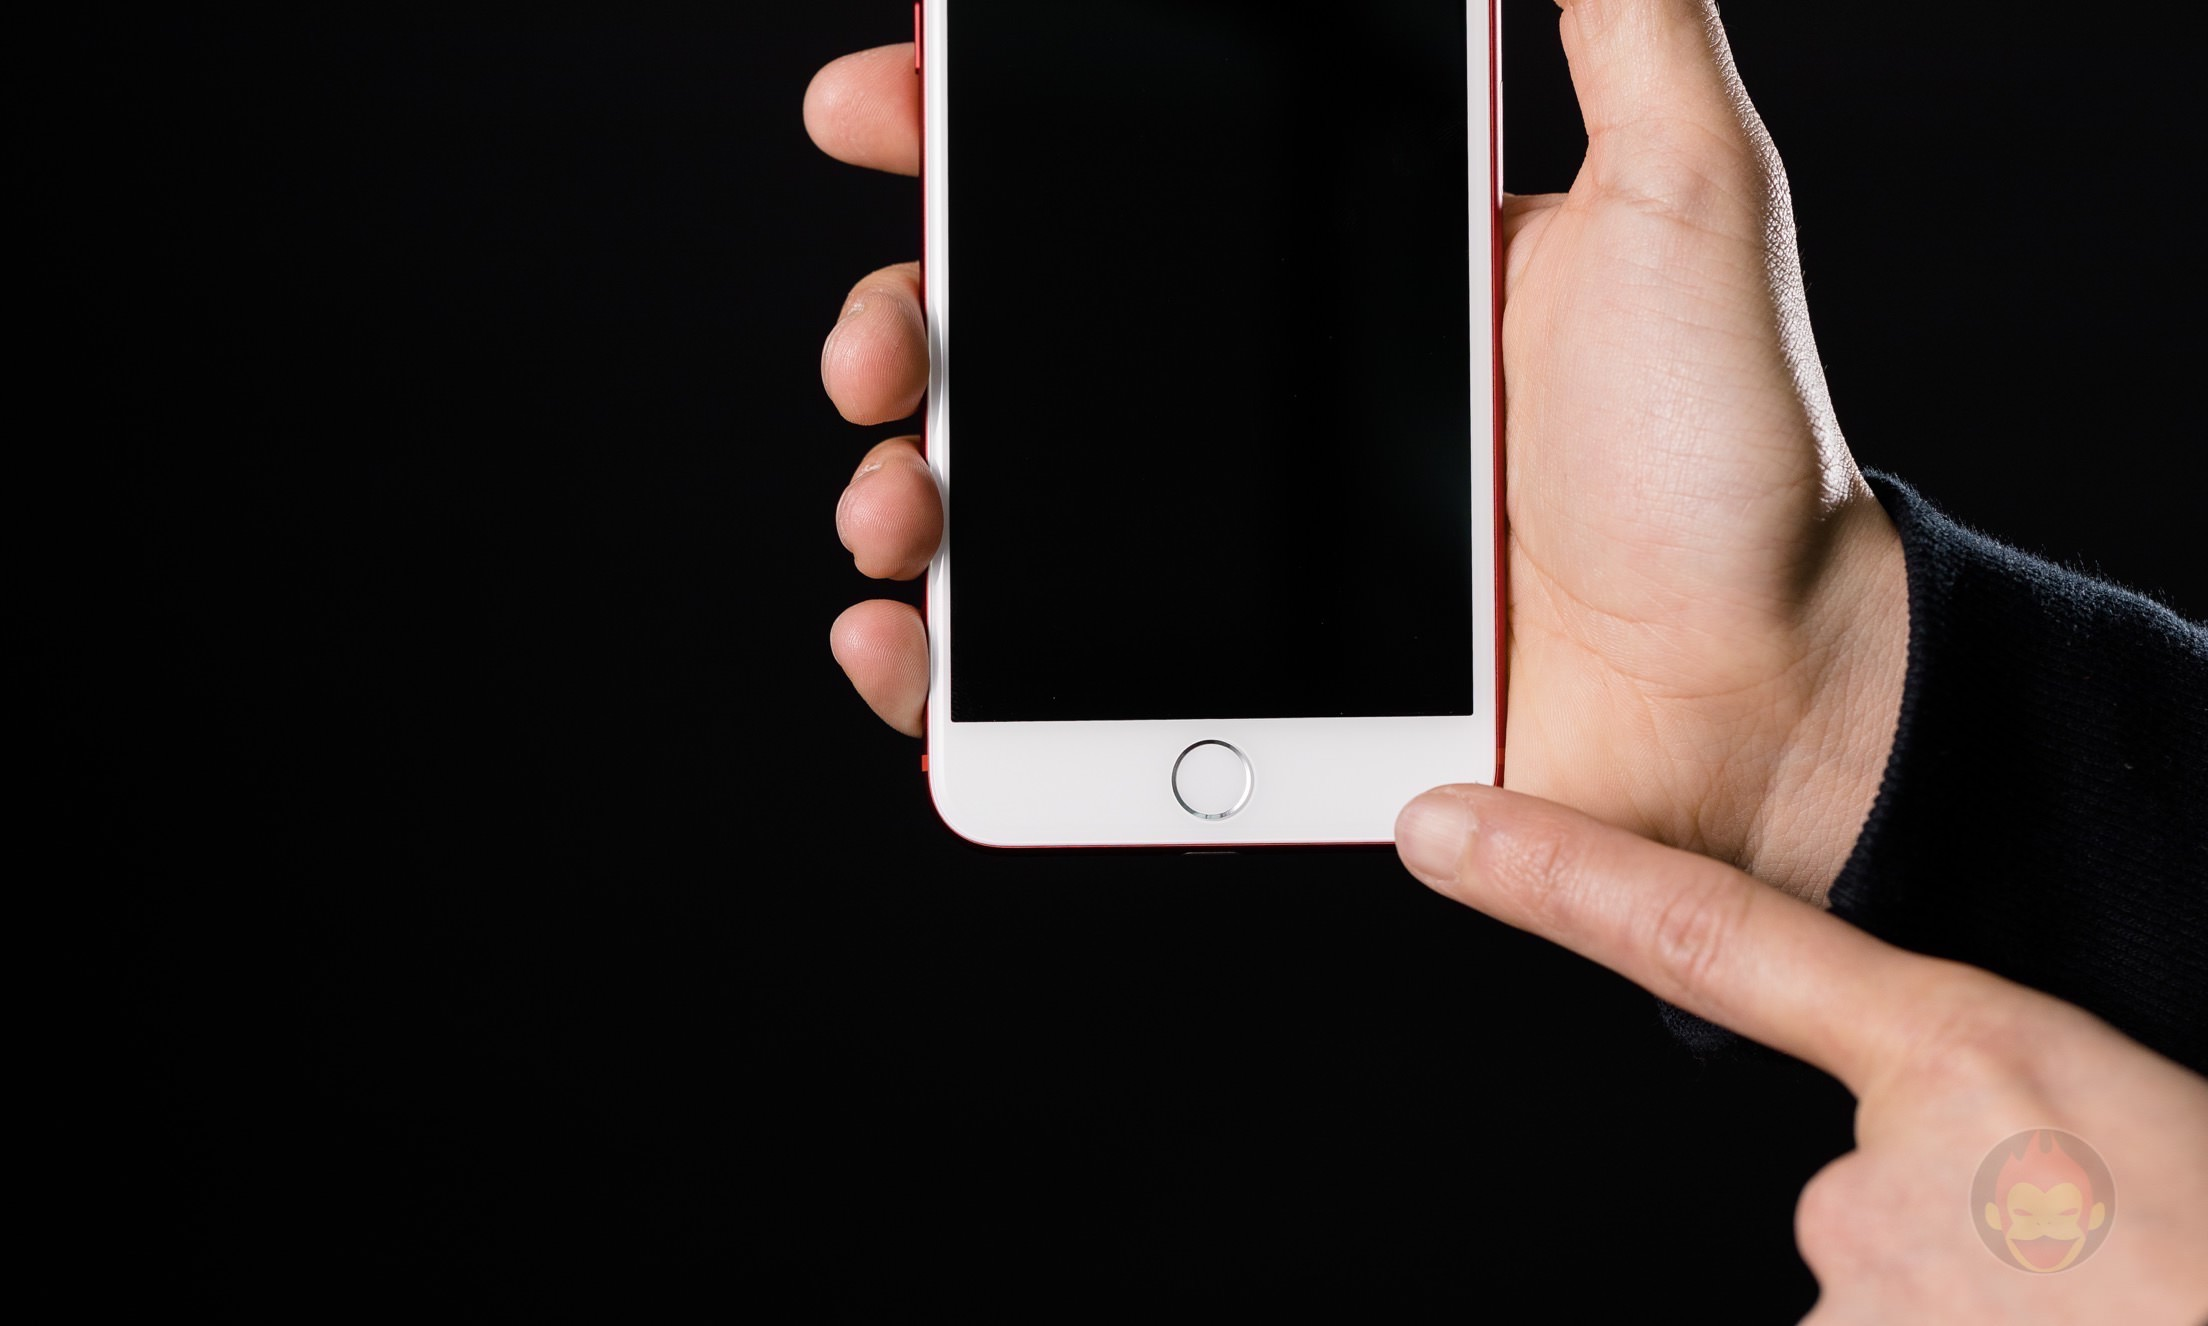 iPhone-7-Product-Red-Special-Edition-11.jpg